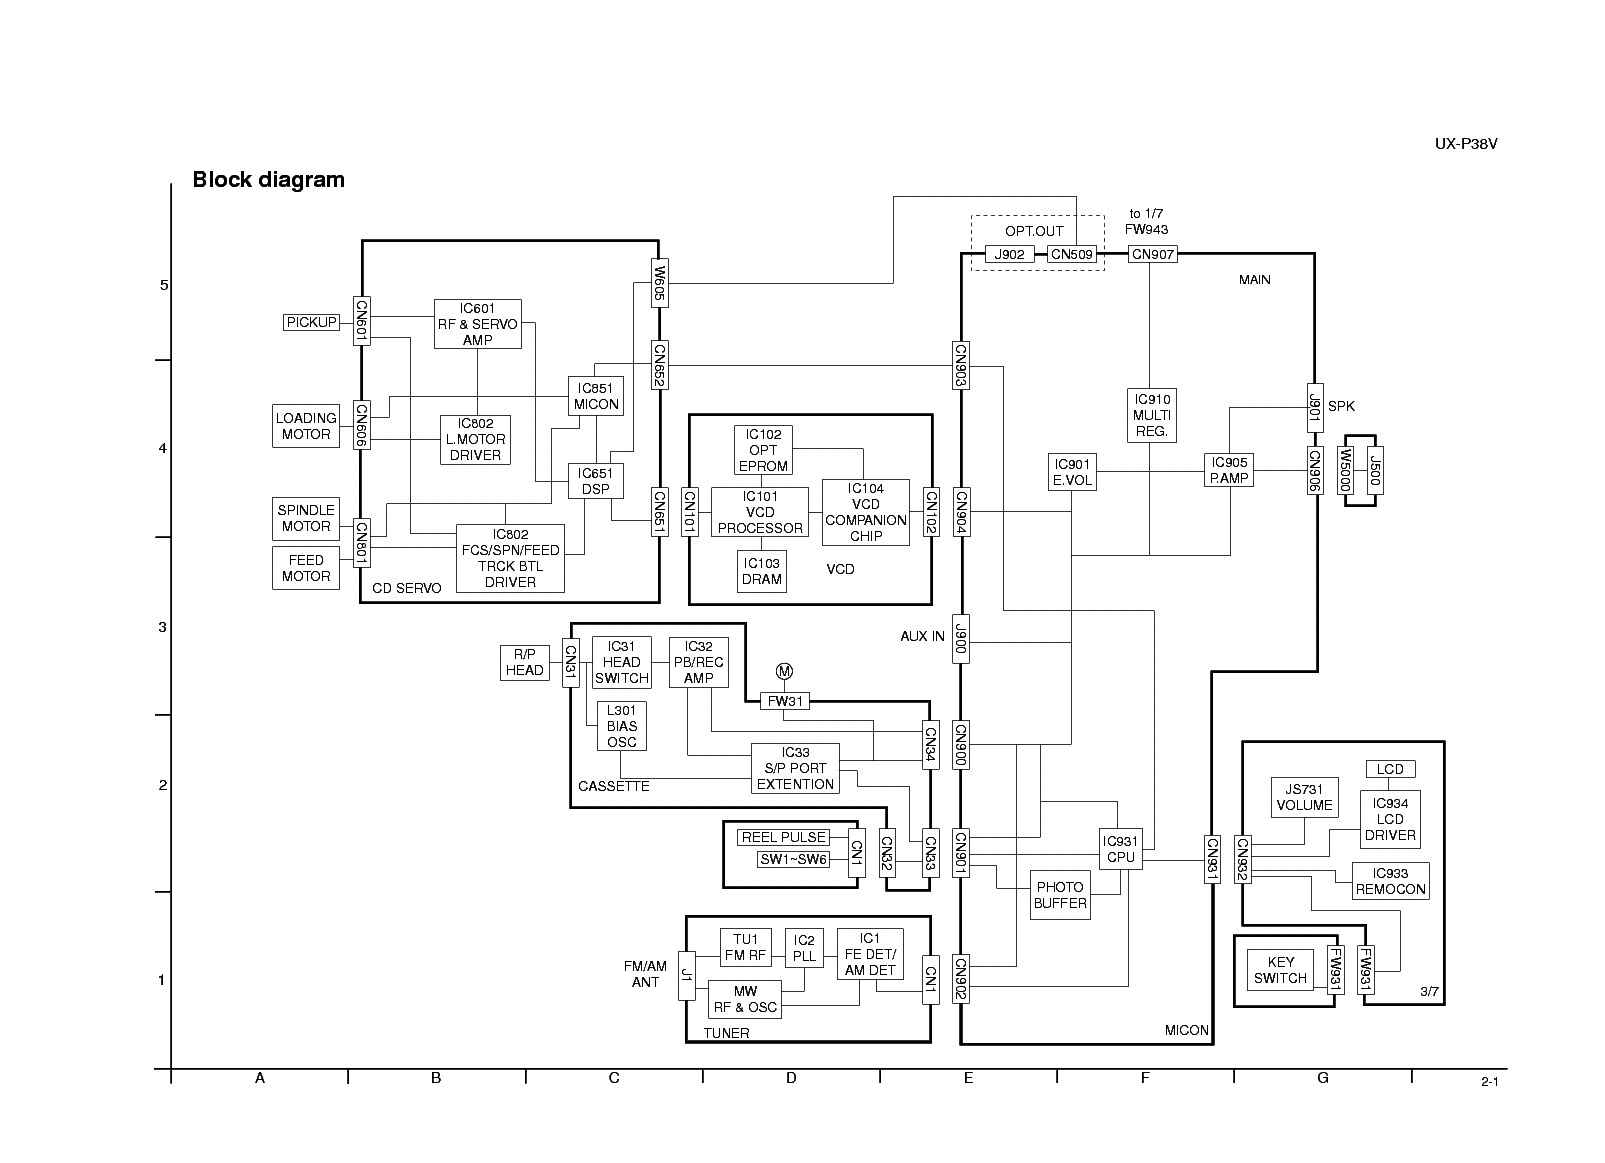 Jvc Ax 222bk Service Manual Free Download Schematics